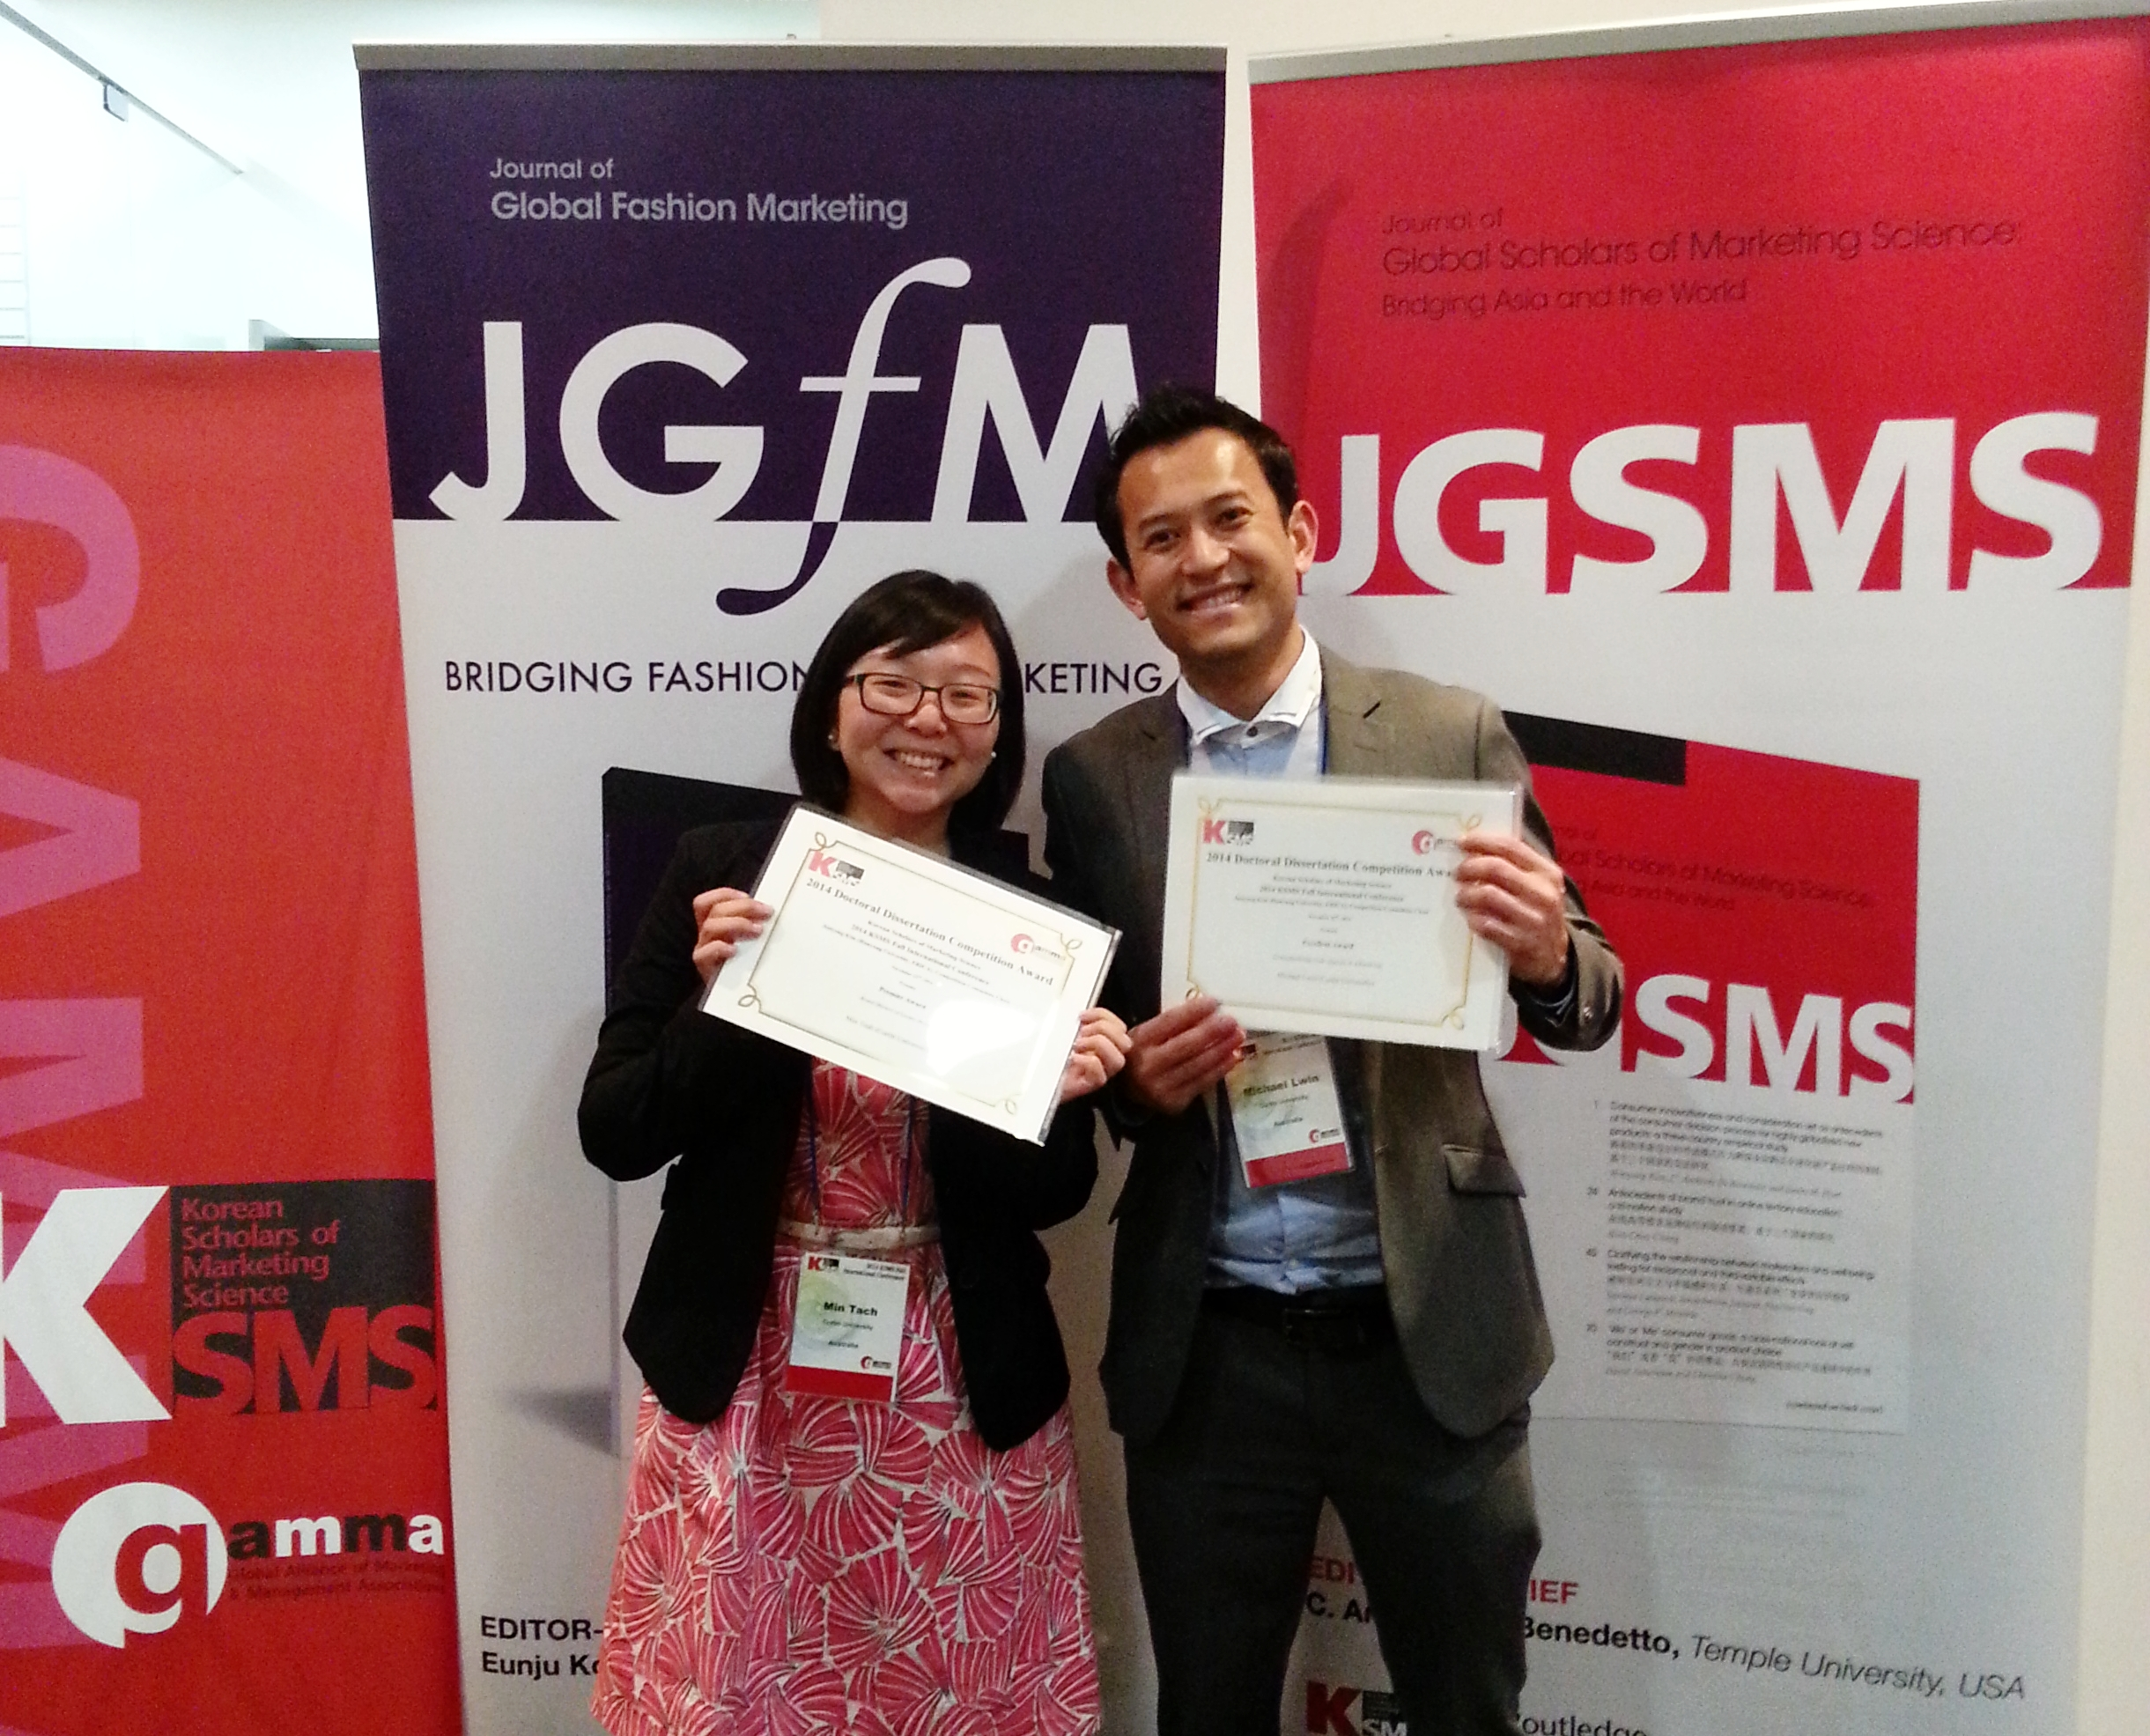 Dr. Min Teah and Dr. Michael Lwin win award at KSMS Conference 2014